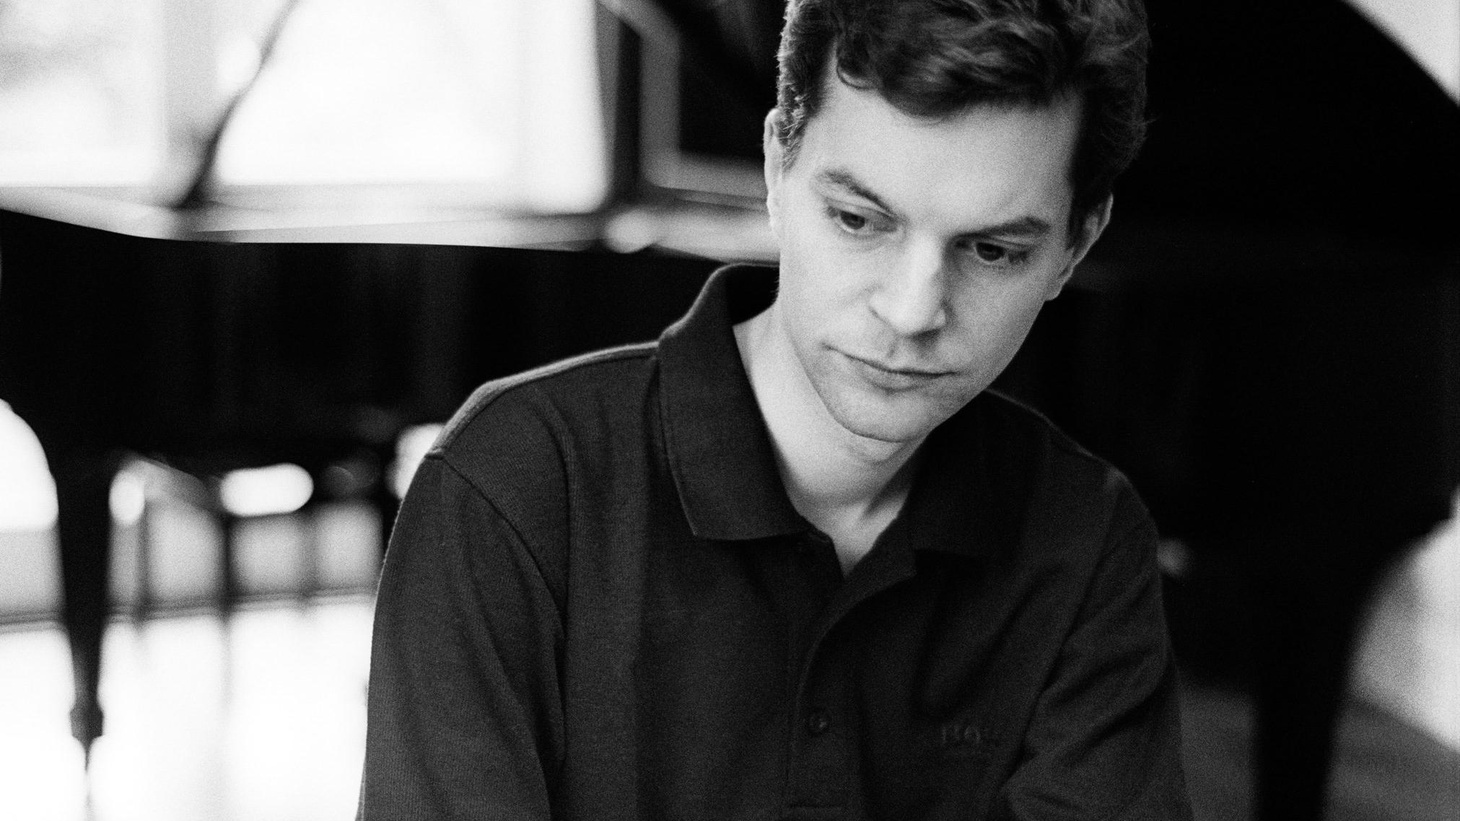 ...from Bach's Inventions and French Suite 5.   It's rare that we offer a classical track, but Austrian pianist Till Fellner is an extraordinary interpreter of Johann Sebastian Bach.